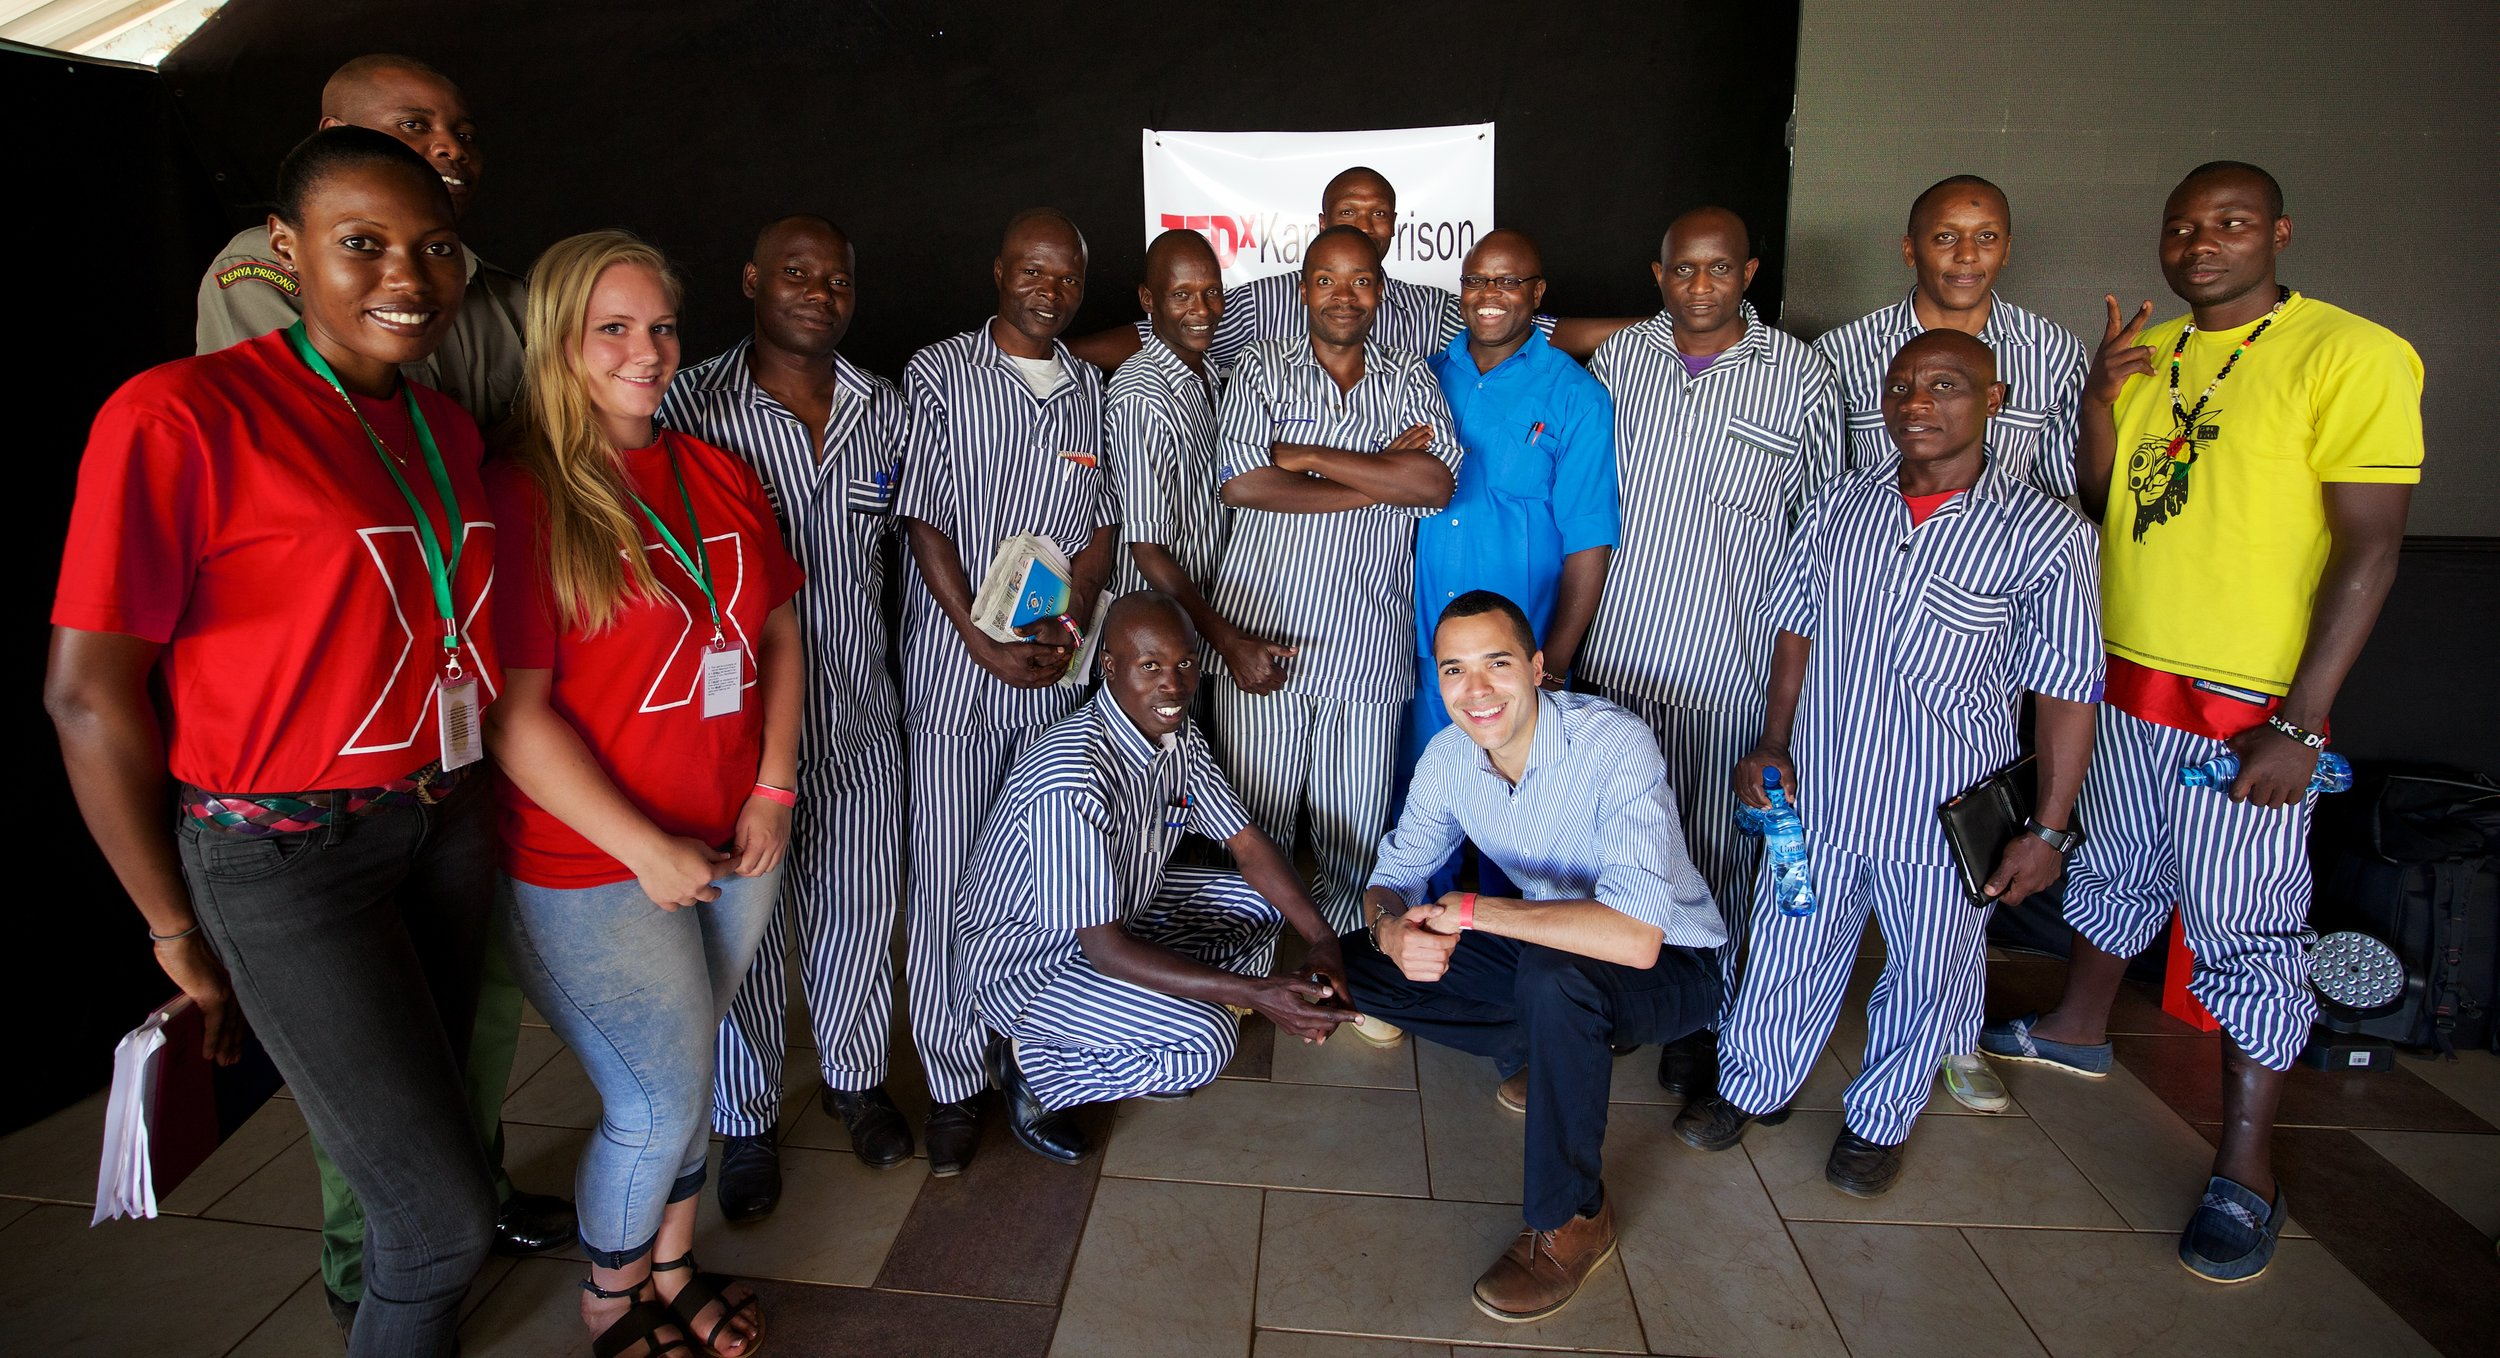 First ever TEDx event in an African prison